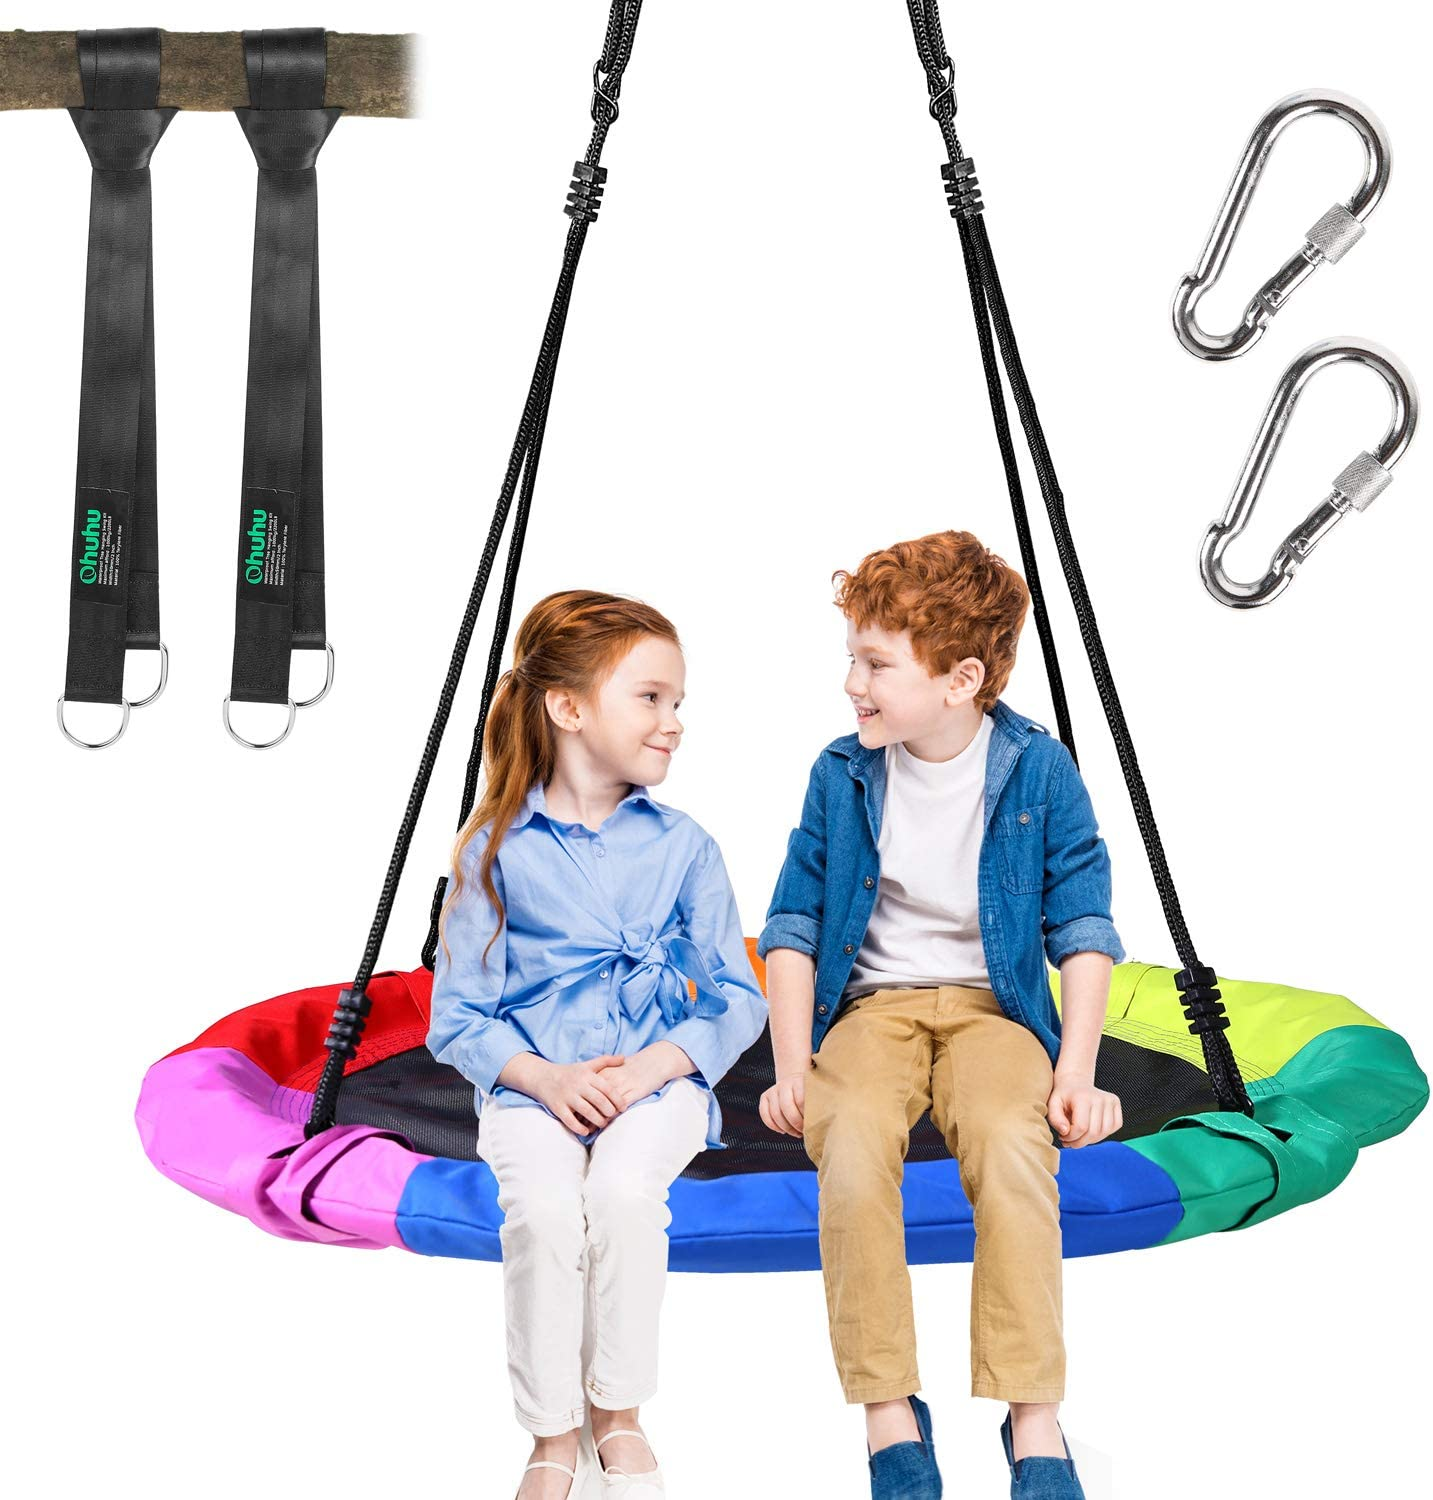 Round Flying Net Saucer Swing Capacity 660lbs RedSwing 40 Spider Web Tree Swing for Kids Safe Durable with Hanging Straps for Outdoor Backyard